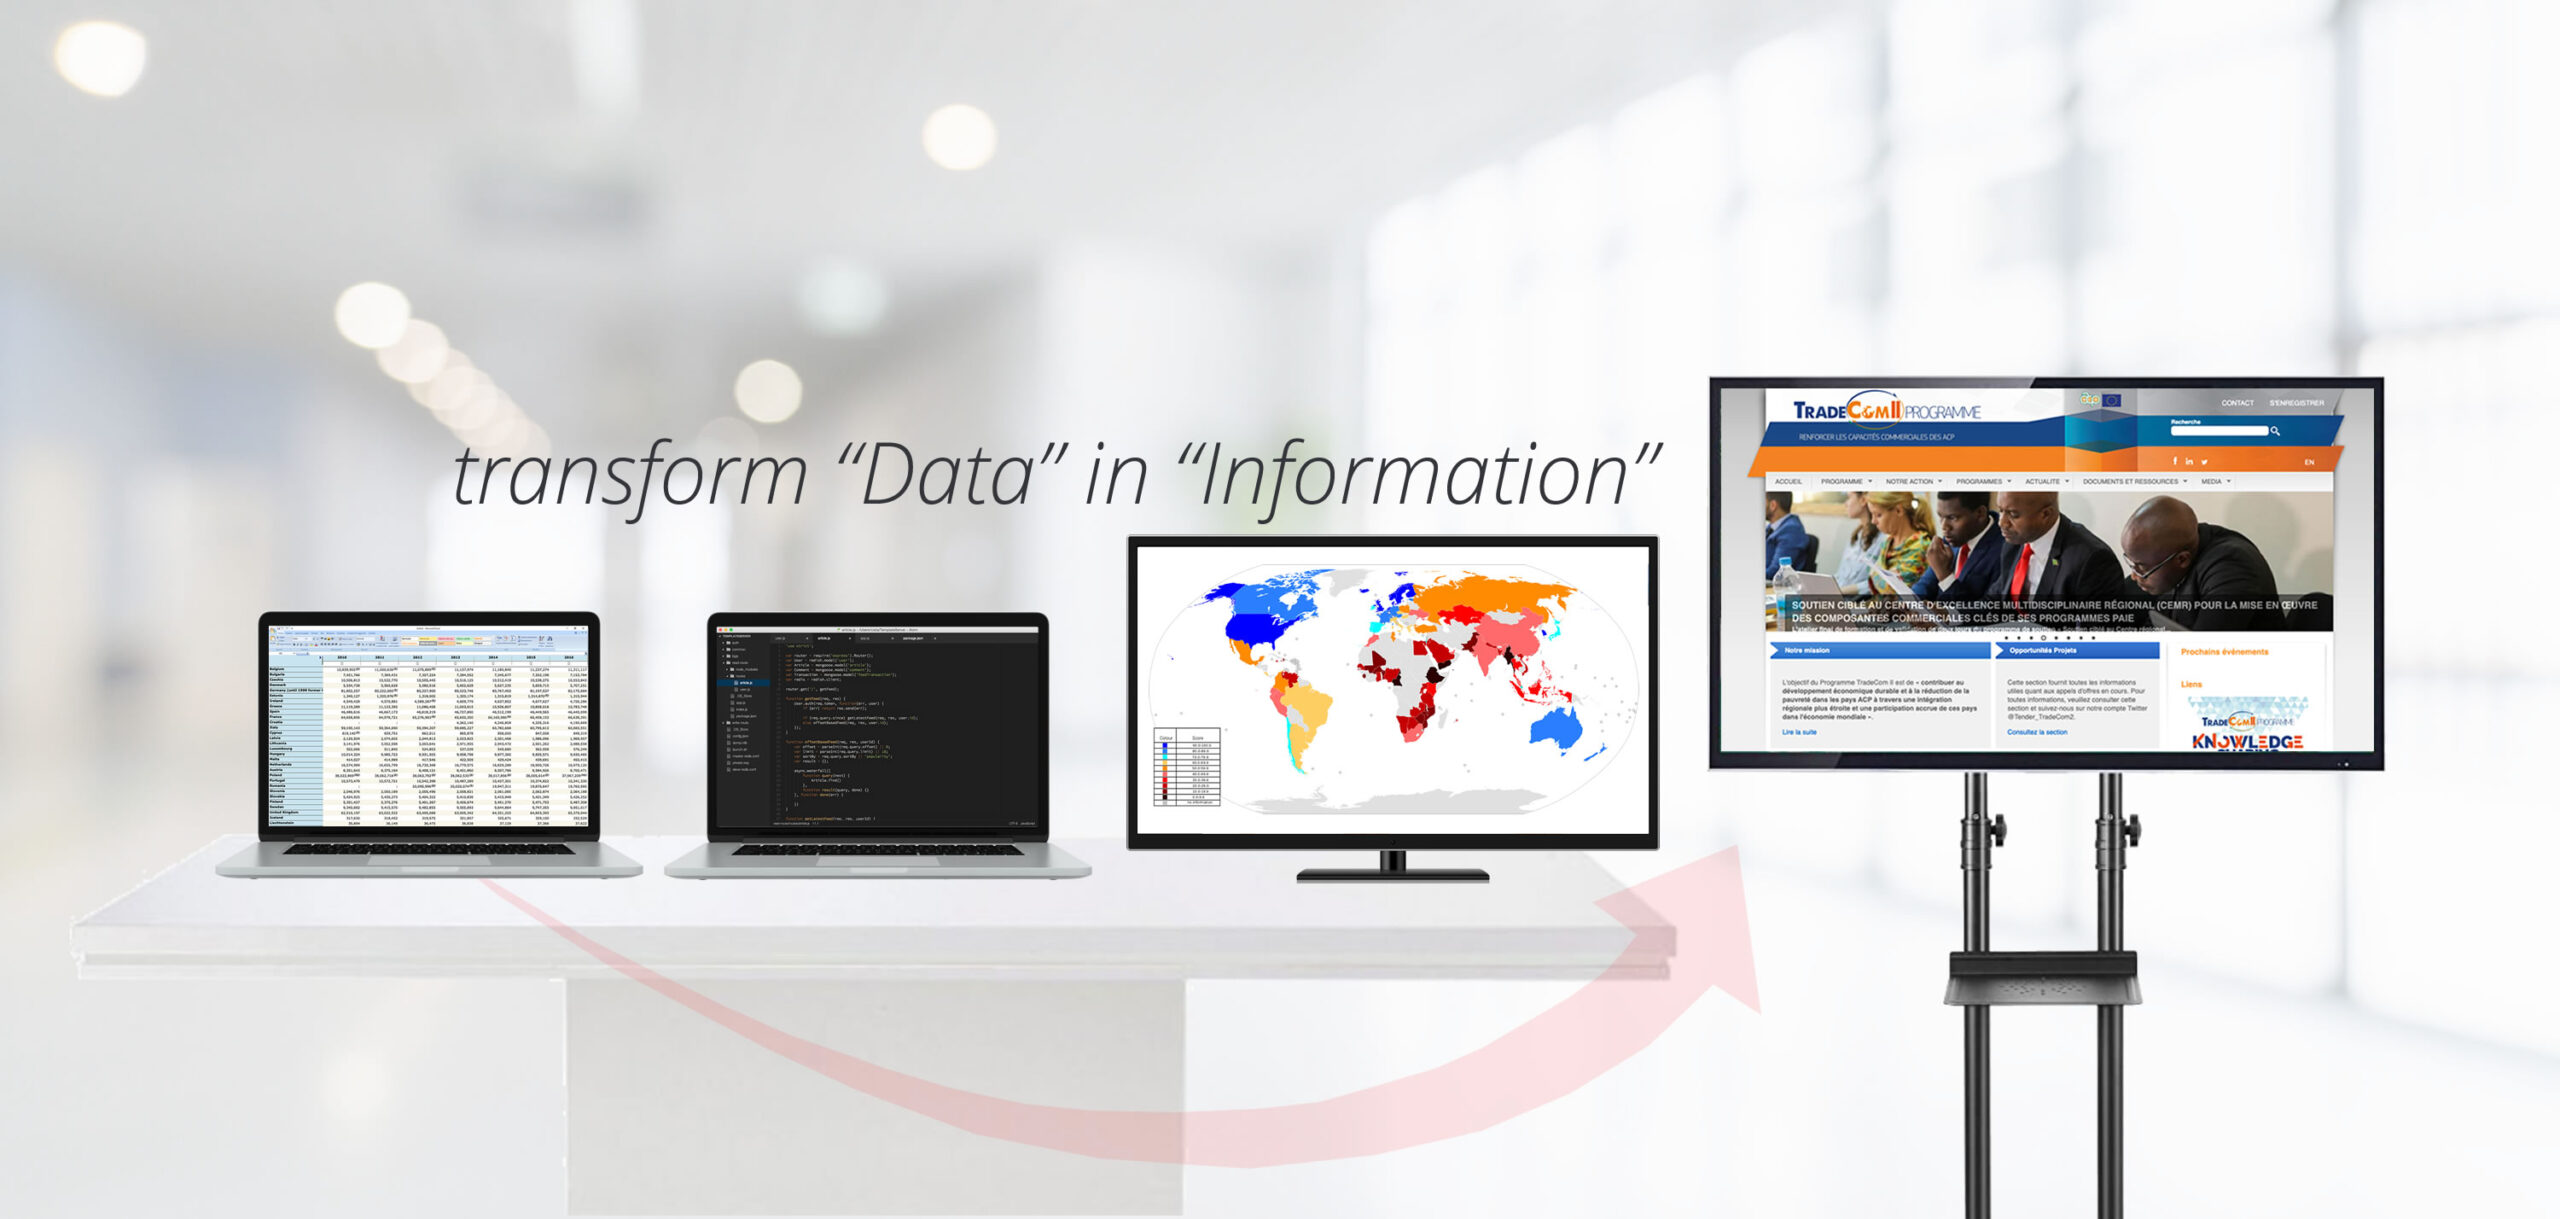 Our Goal is to help our clients to transform 'Data' in 'Information'.